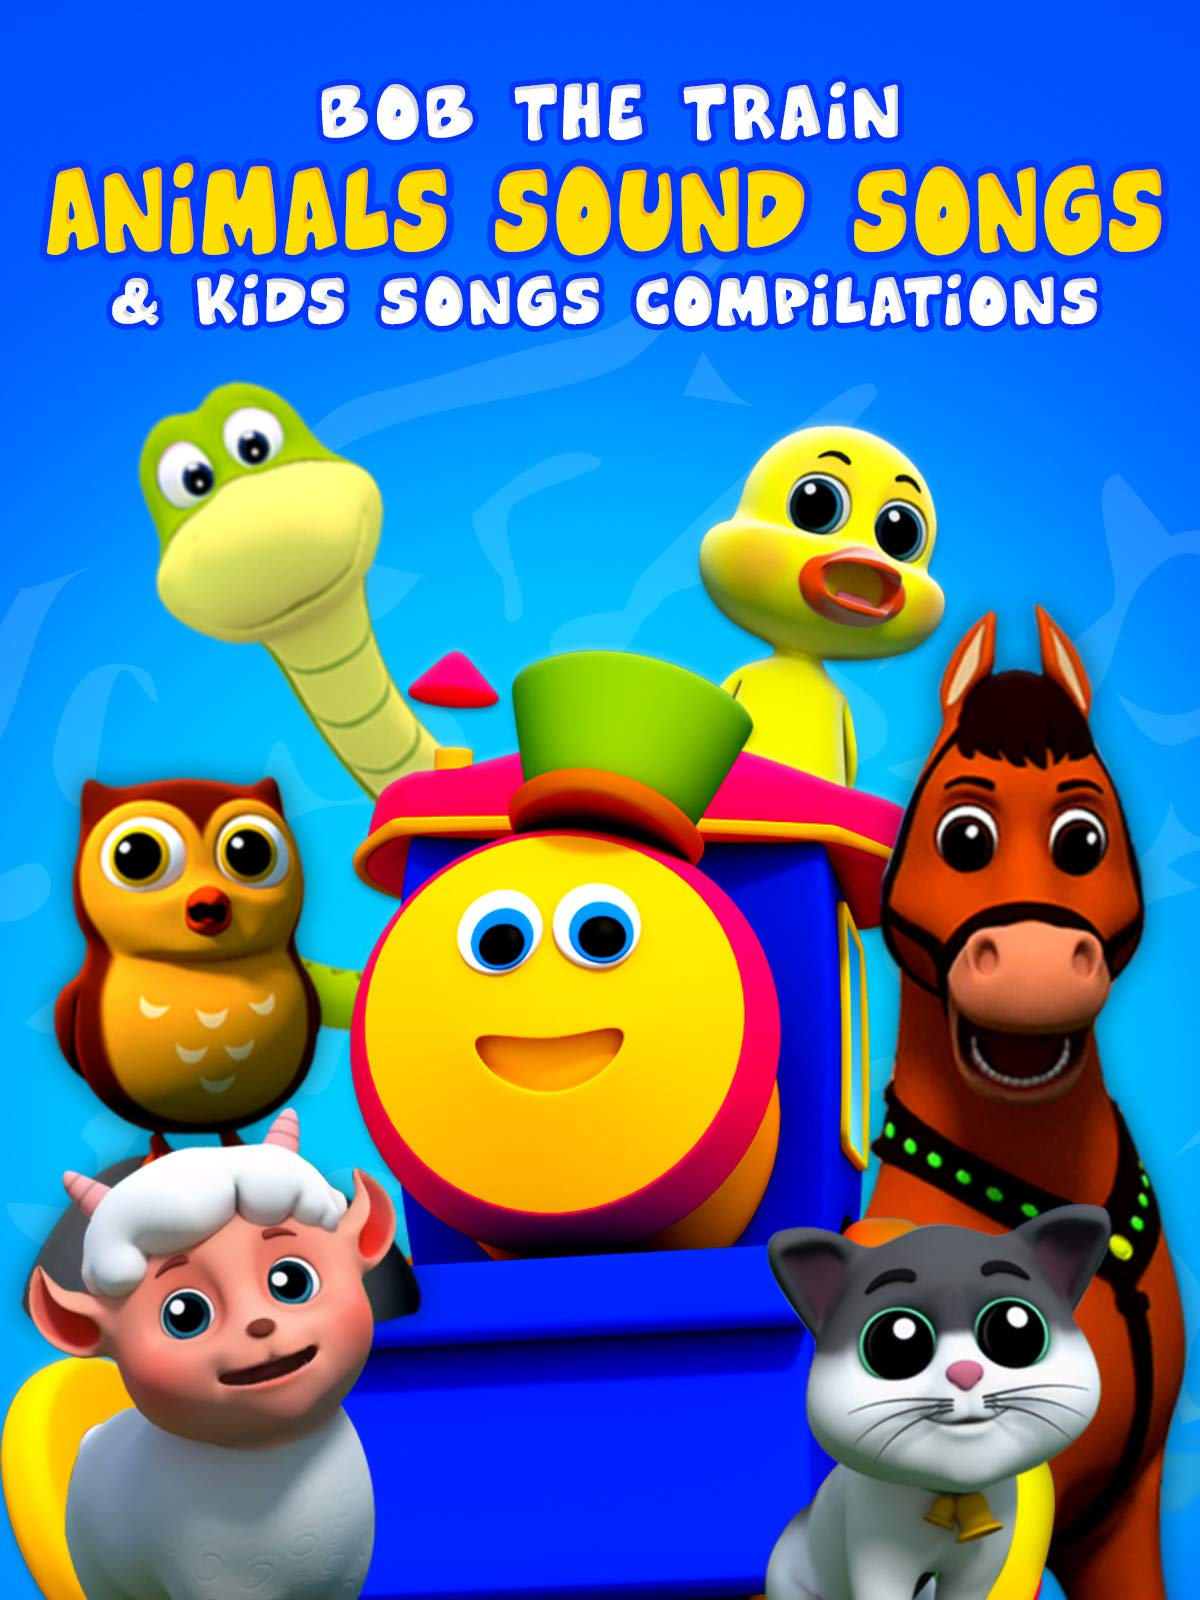 Animals Sound Songs & Kids Songs Compilations - Bob The Train on Amazon Prime Video UK